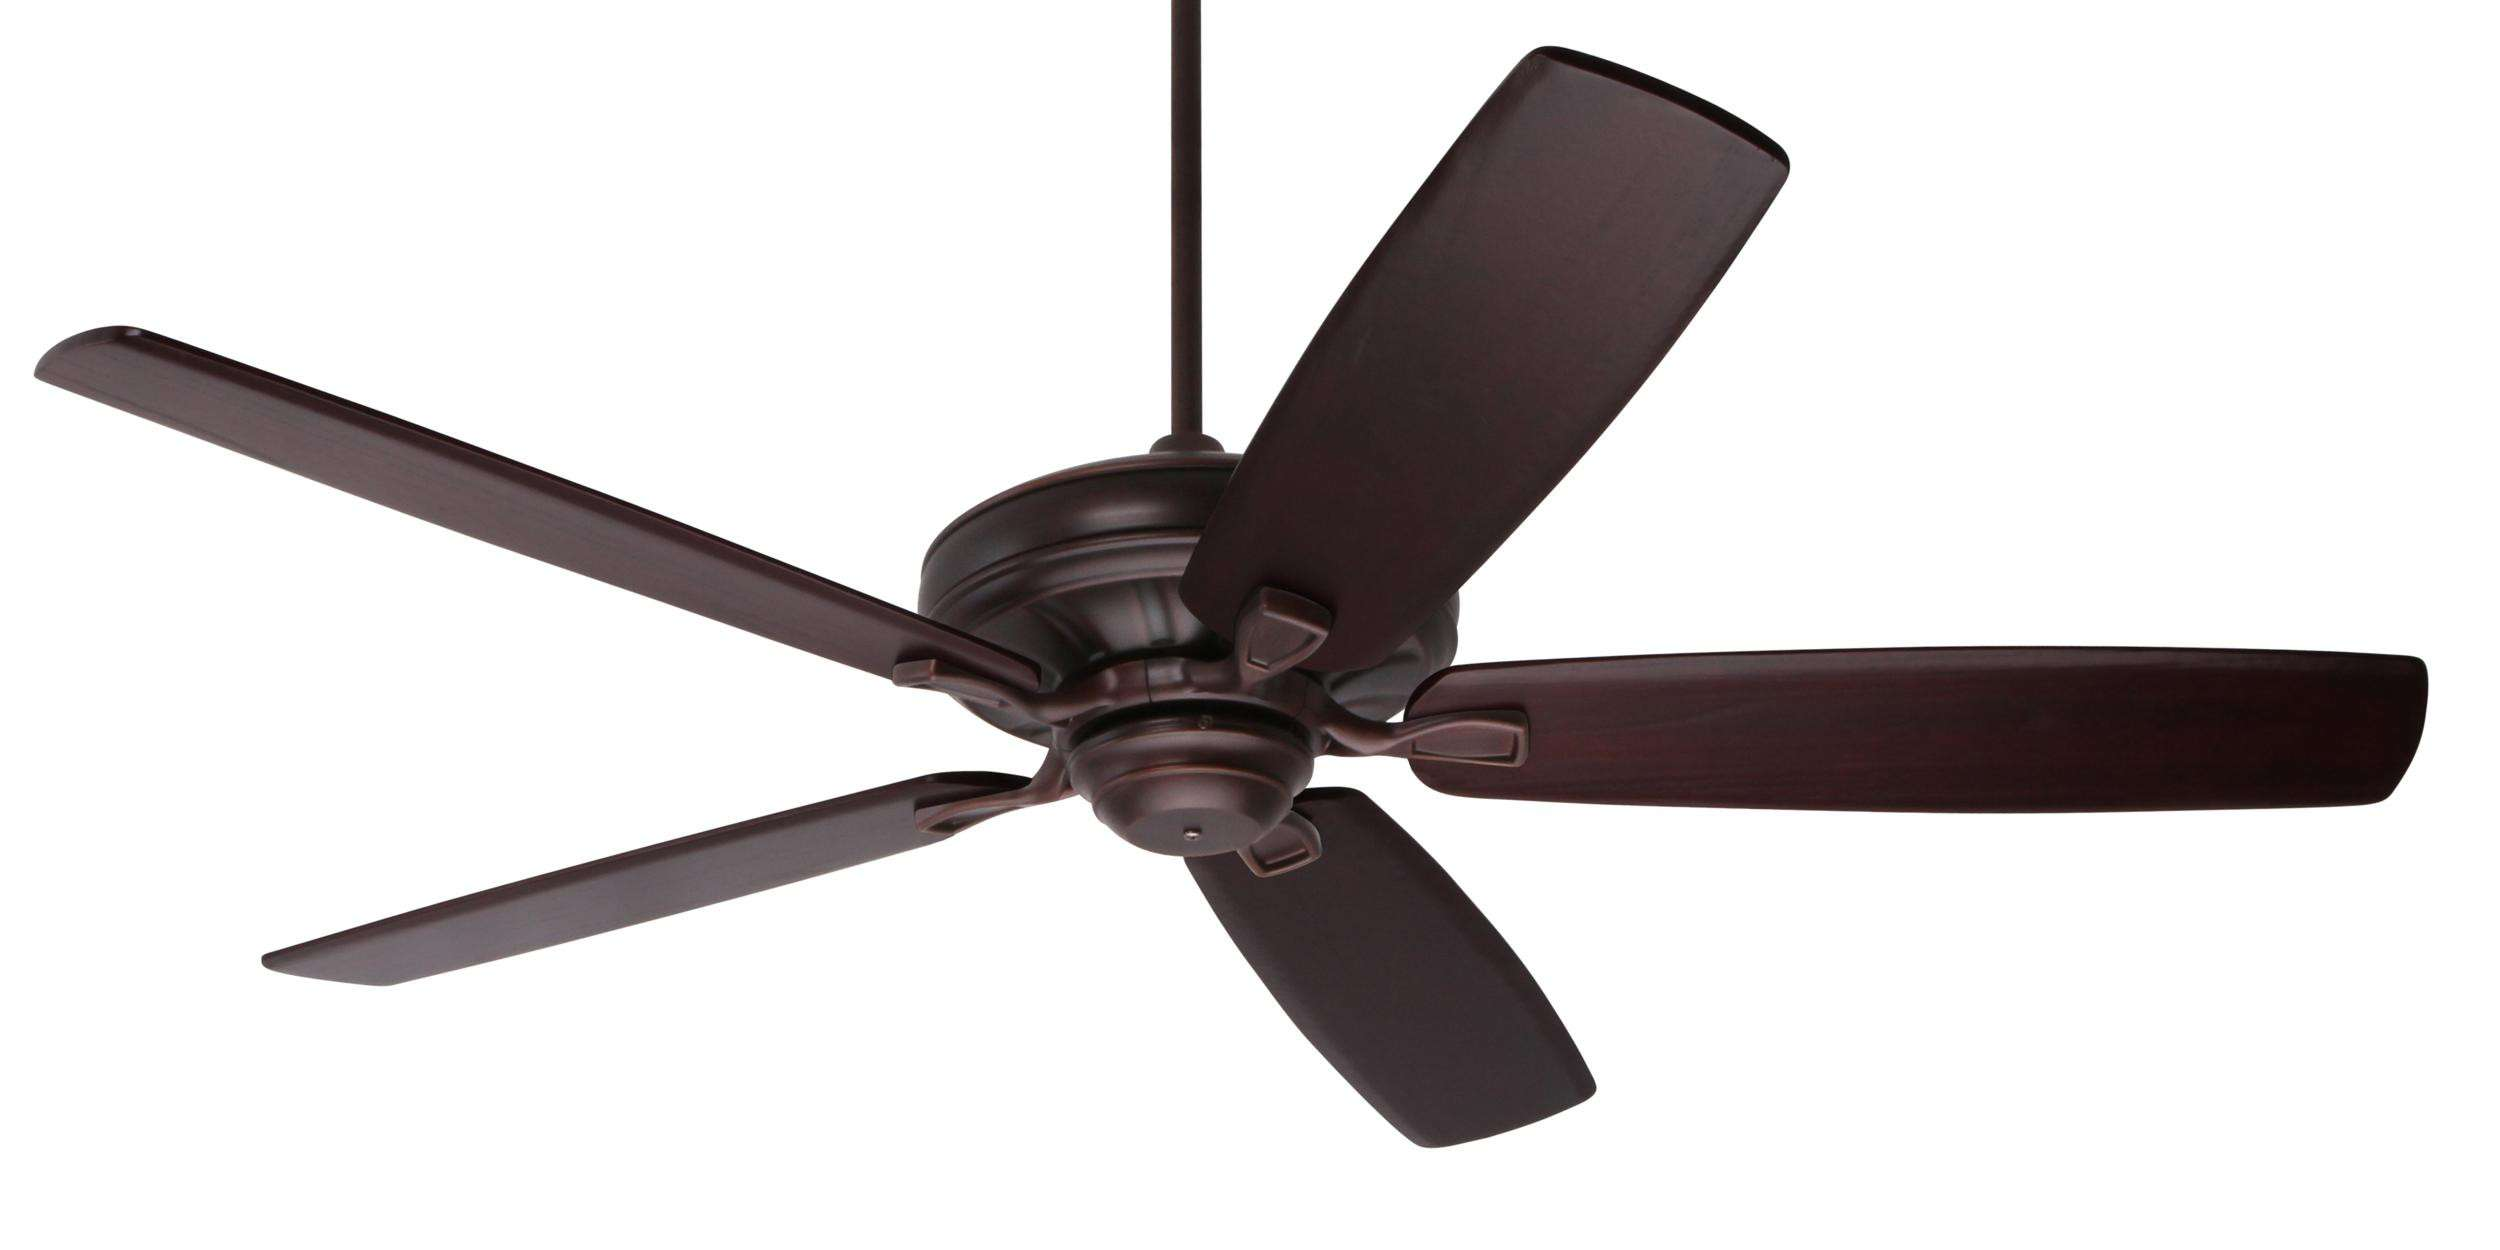 Emerson Carrera Grande Eco 60 (DC Motor) Ceiling Fan Model CF788VNB-60 in Venetian Bronze